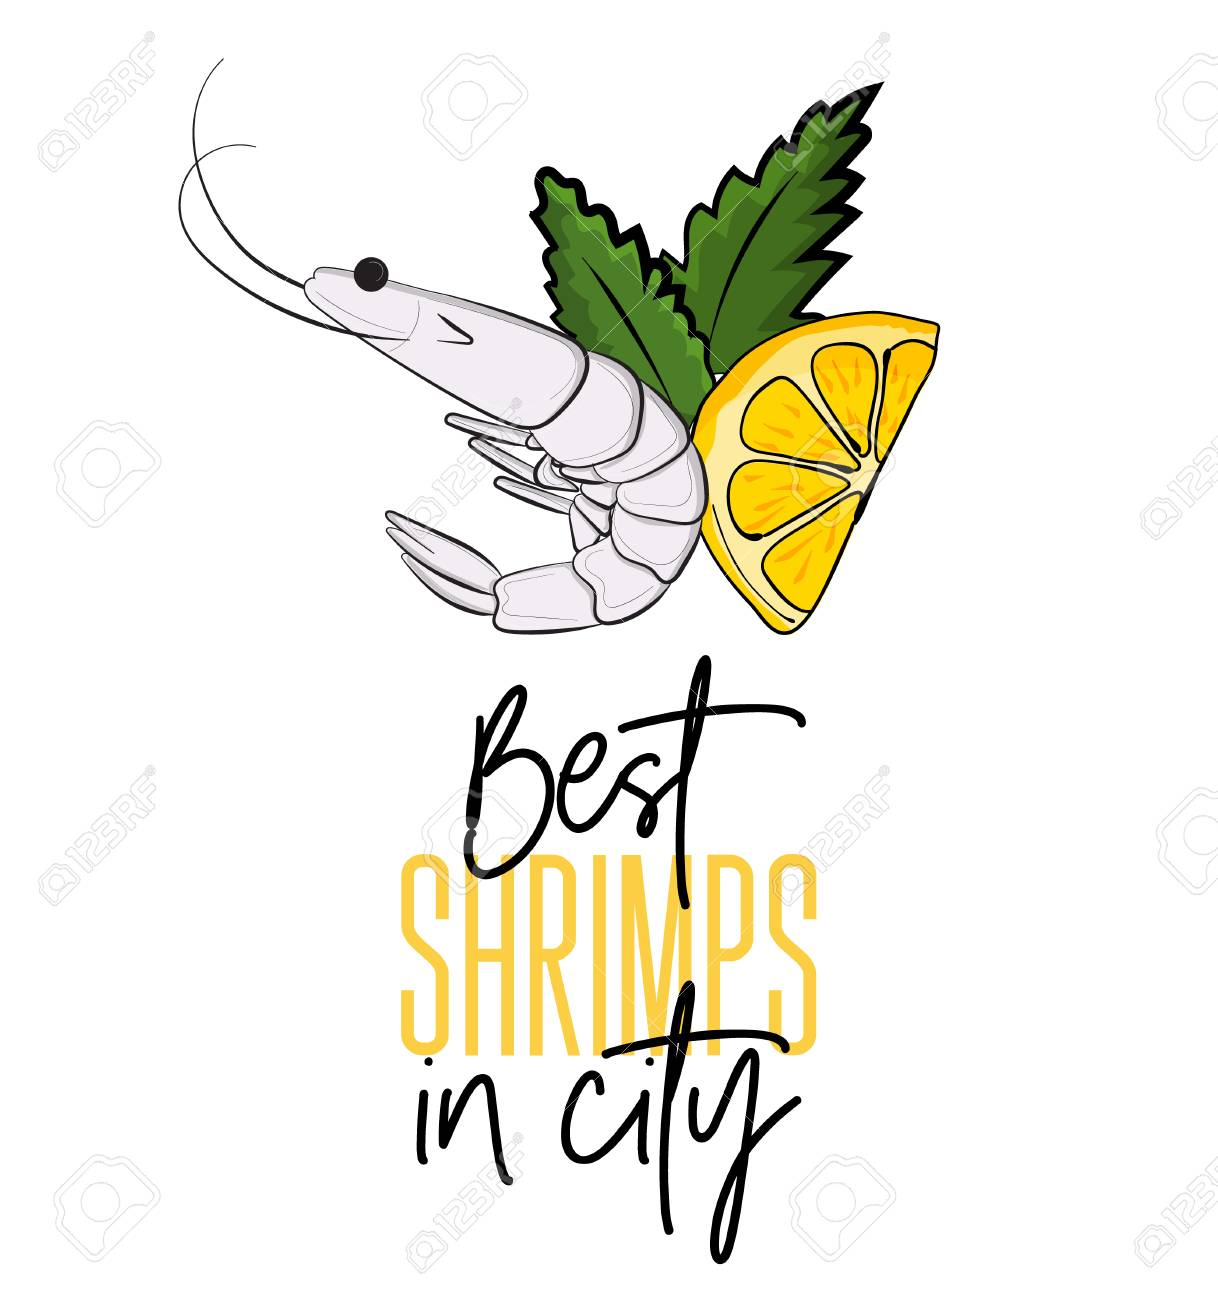 vector best shrimps in city illustration seafood cooked menu rh 123rf com Seafood Plate Clip Art Seafood Cartoon Clip Art